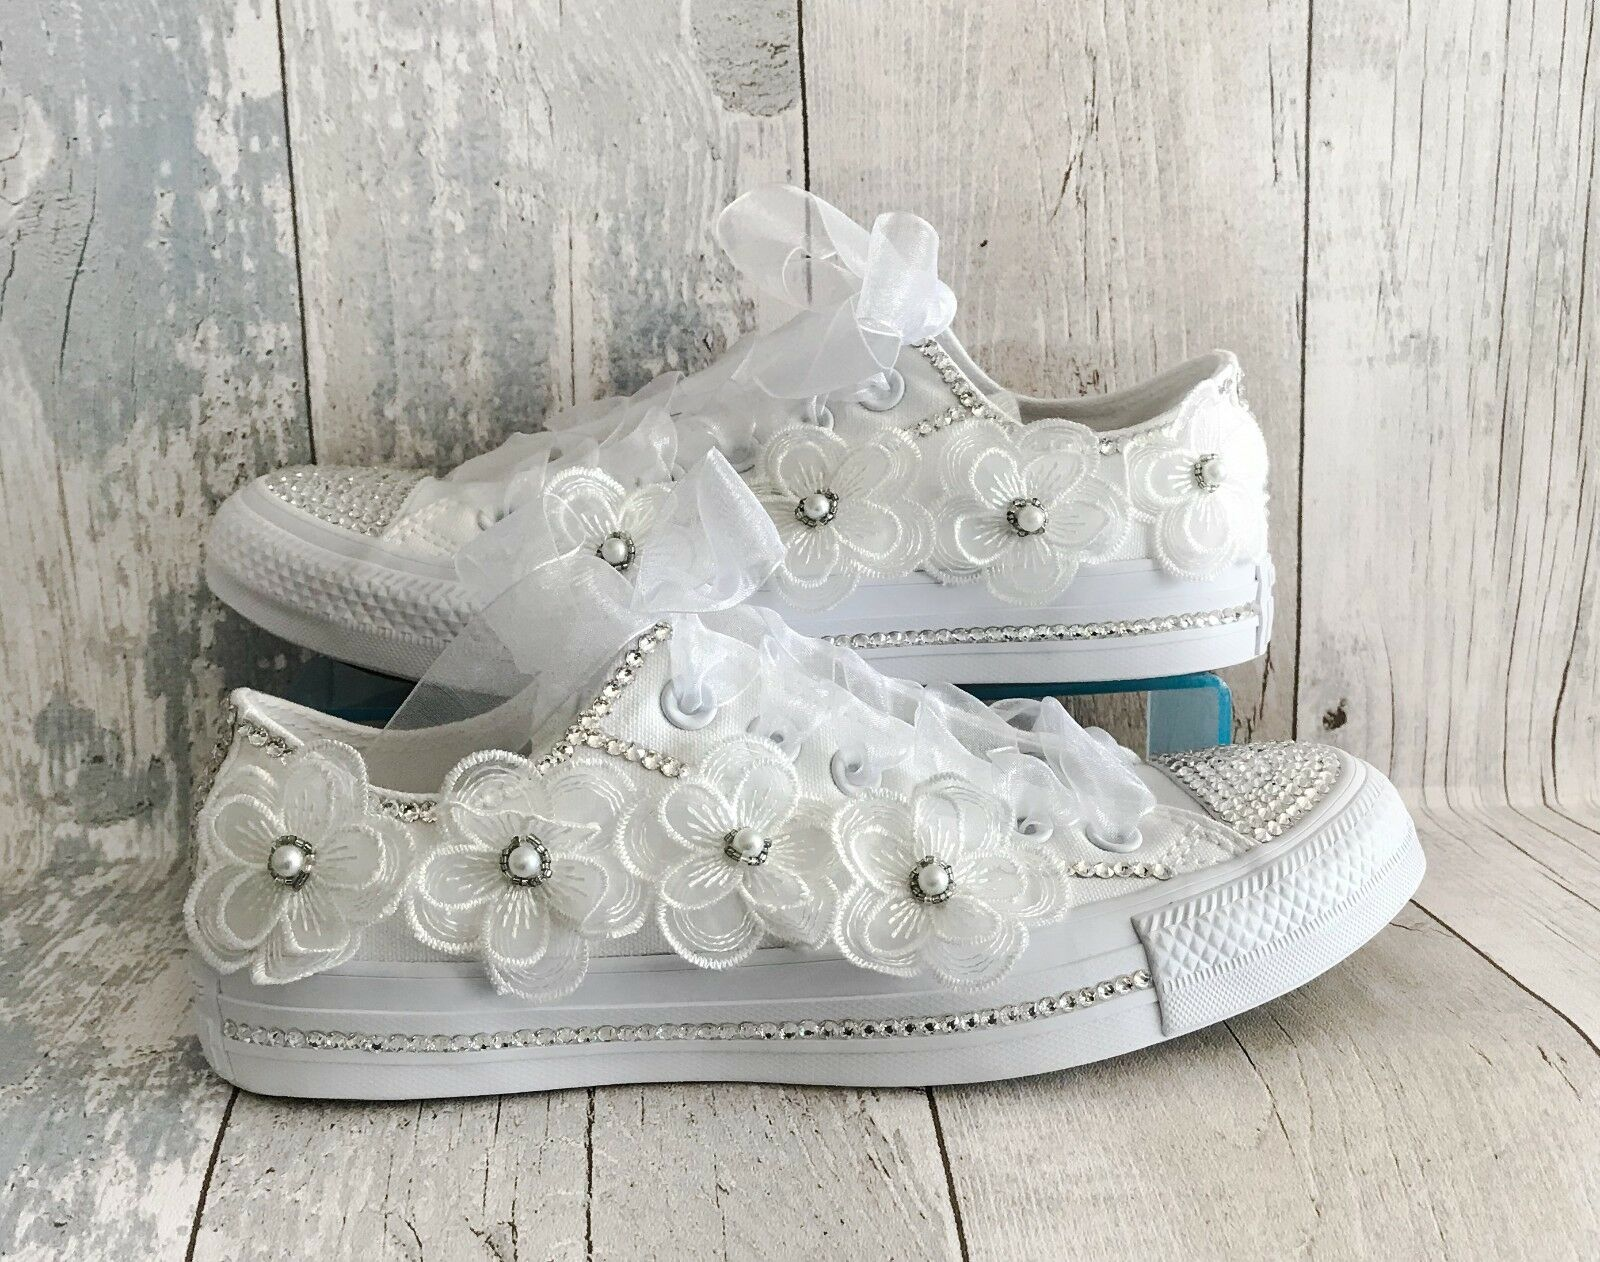 Wedding Converse Trainers shoes. Swarovski Crystals and Organza Lace Flowers